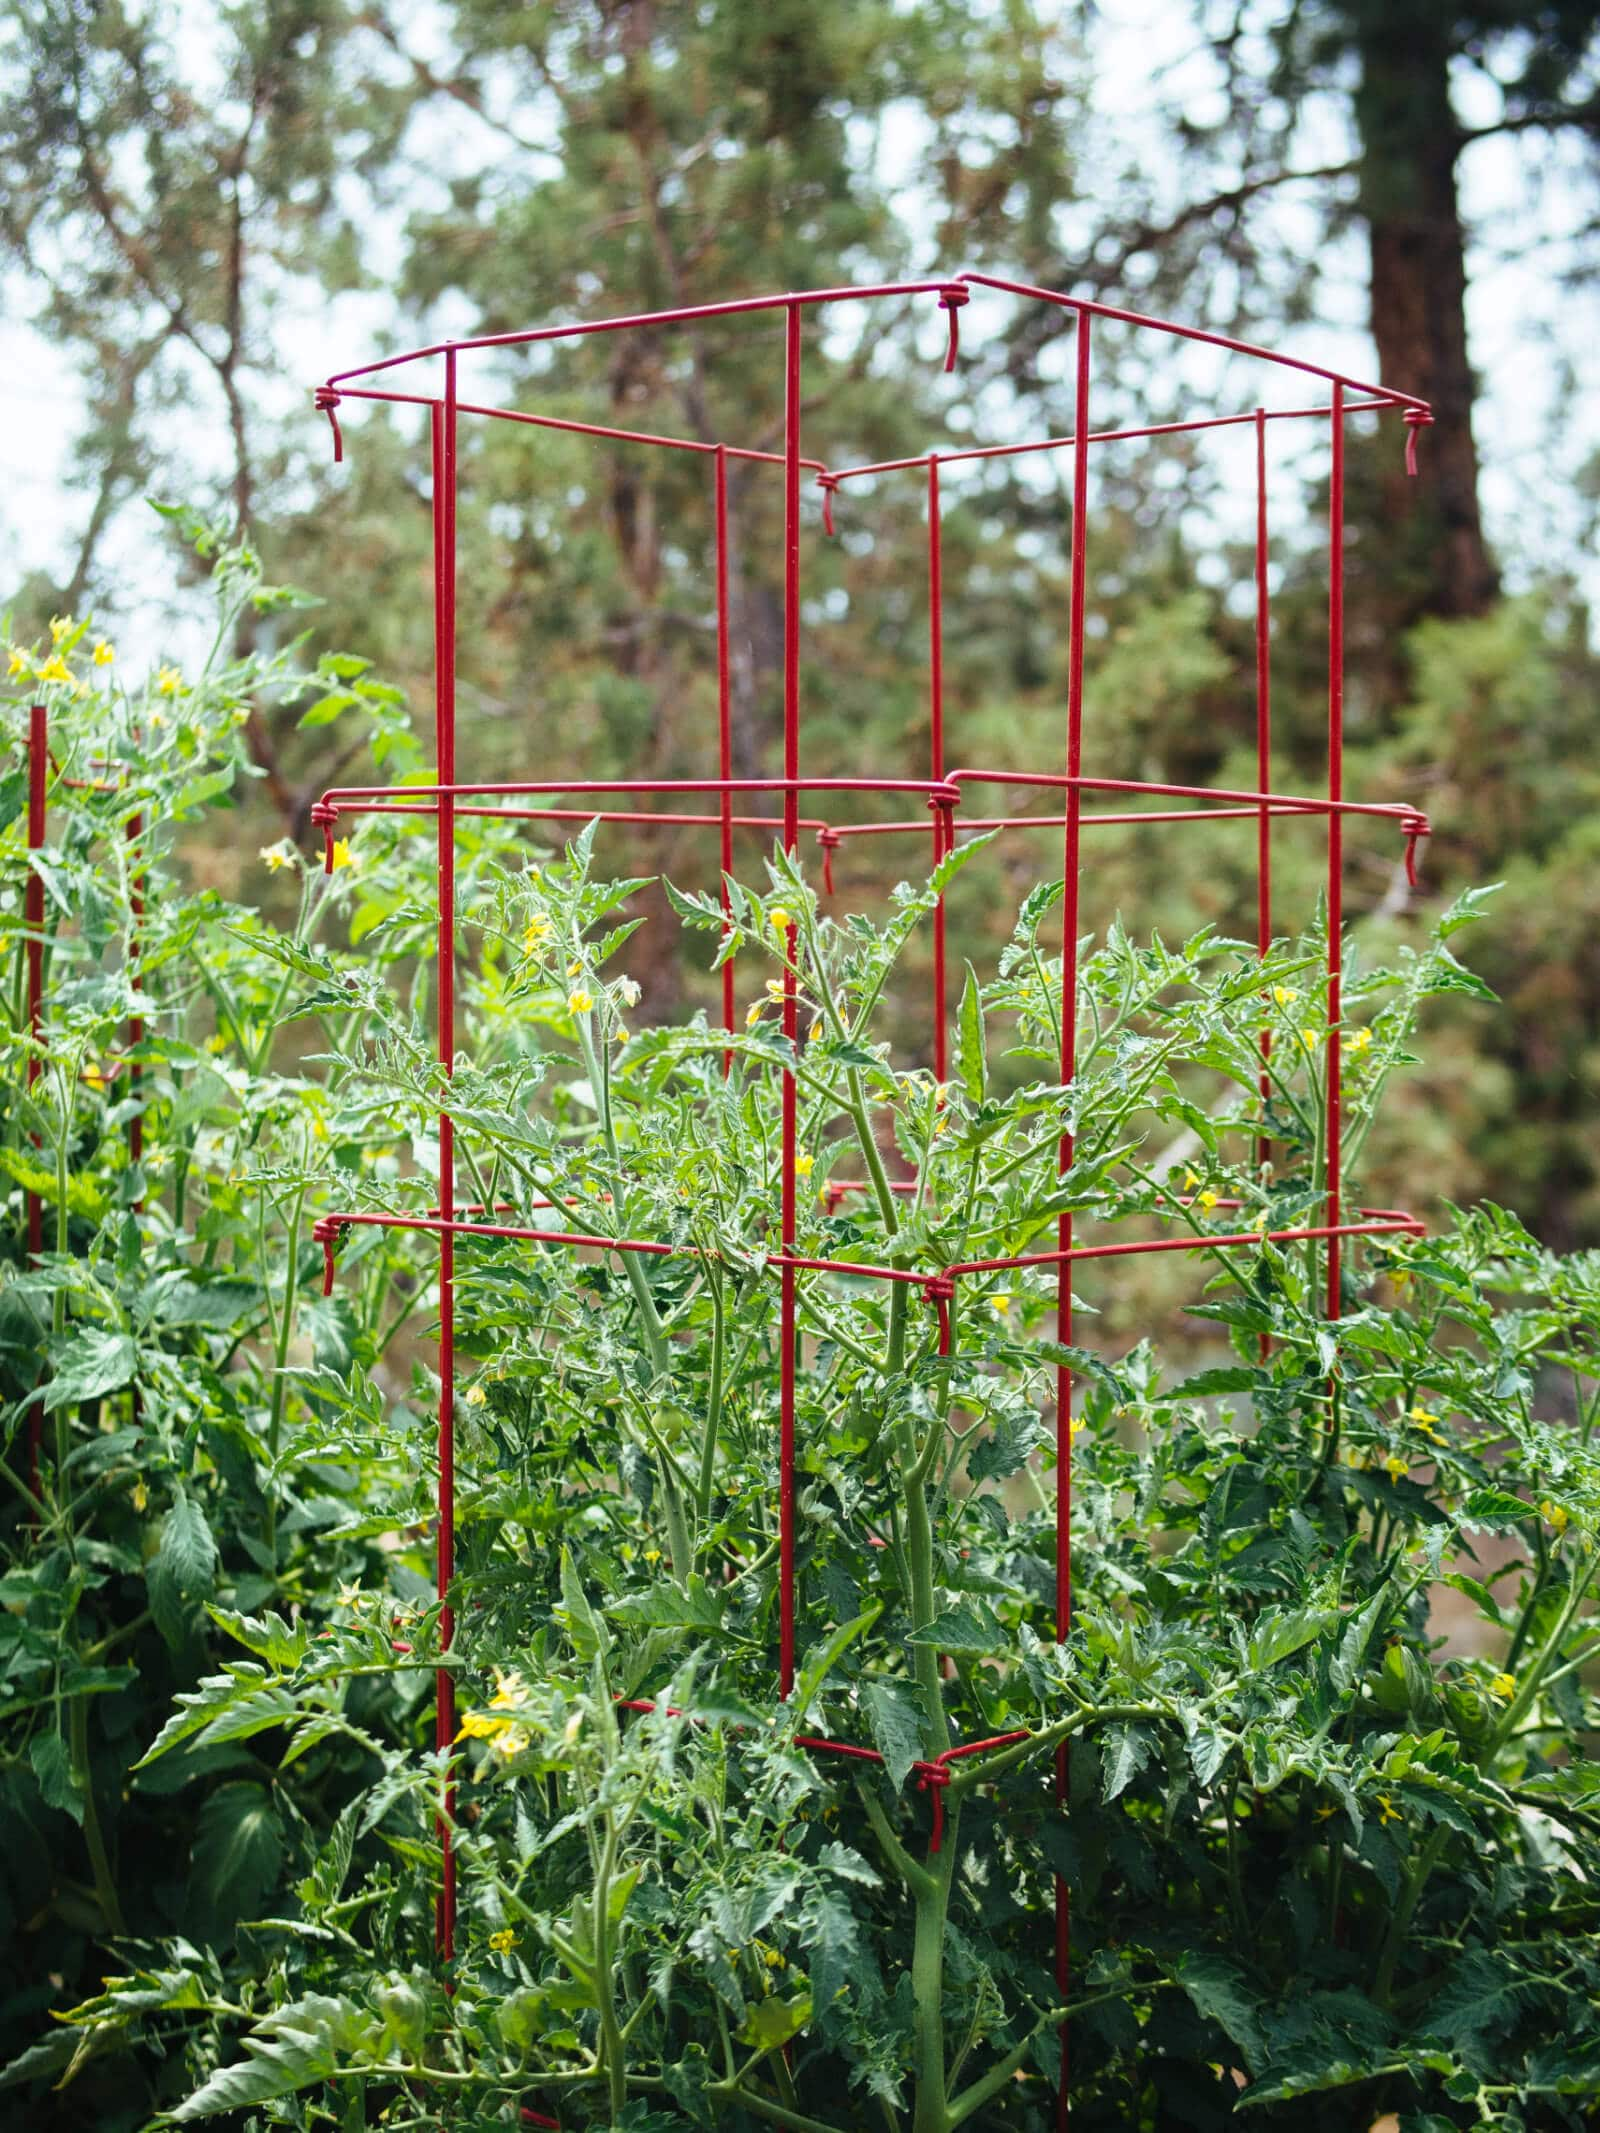 Heavy-gauge square cages help contain and support tomato plants in pots